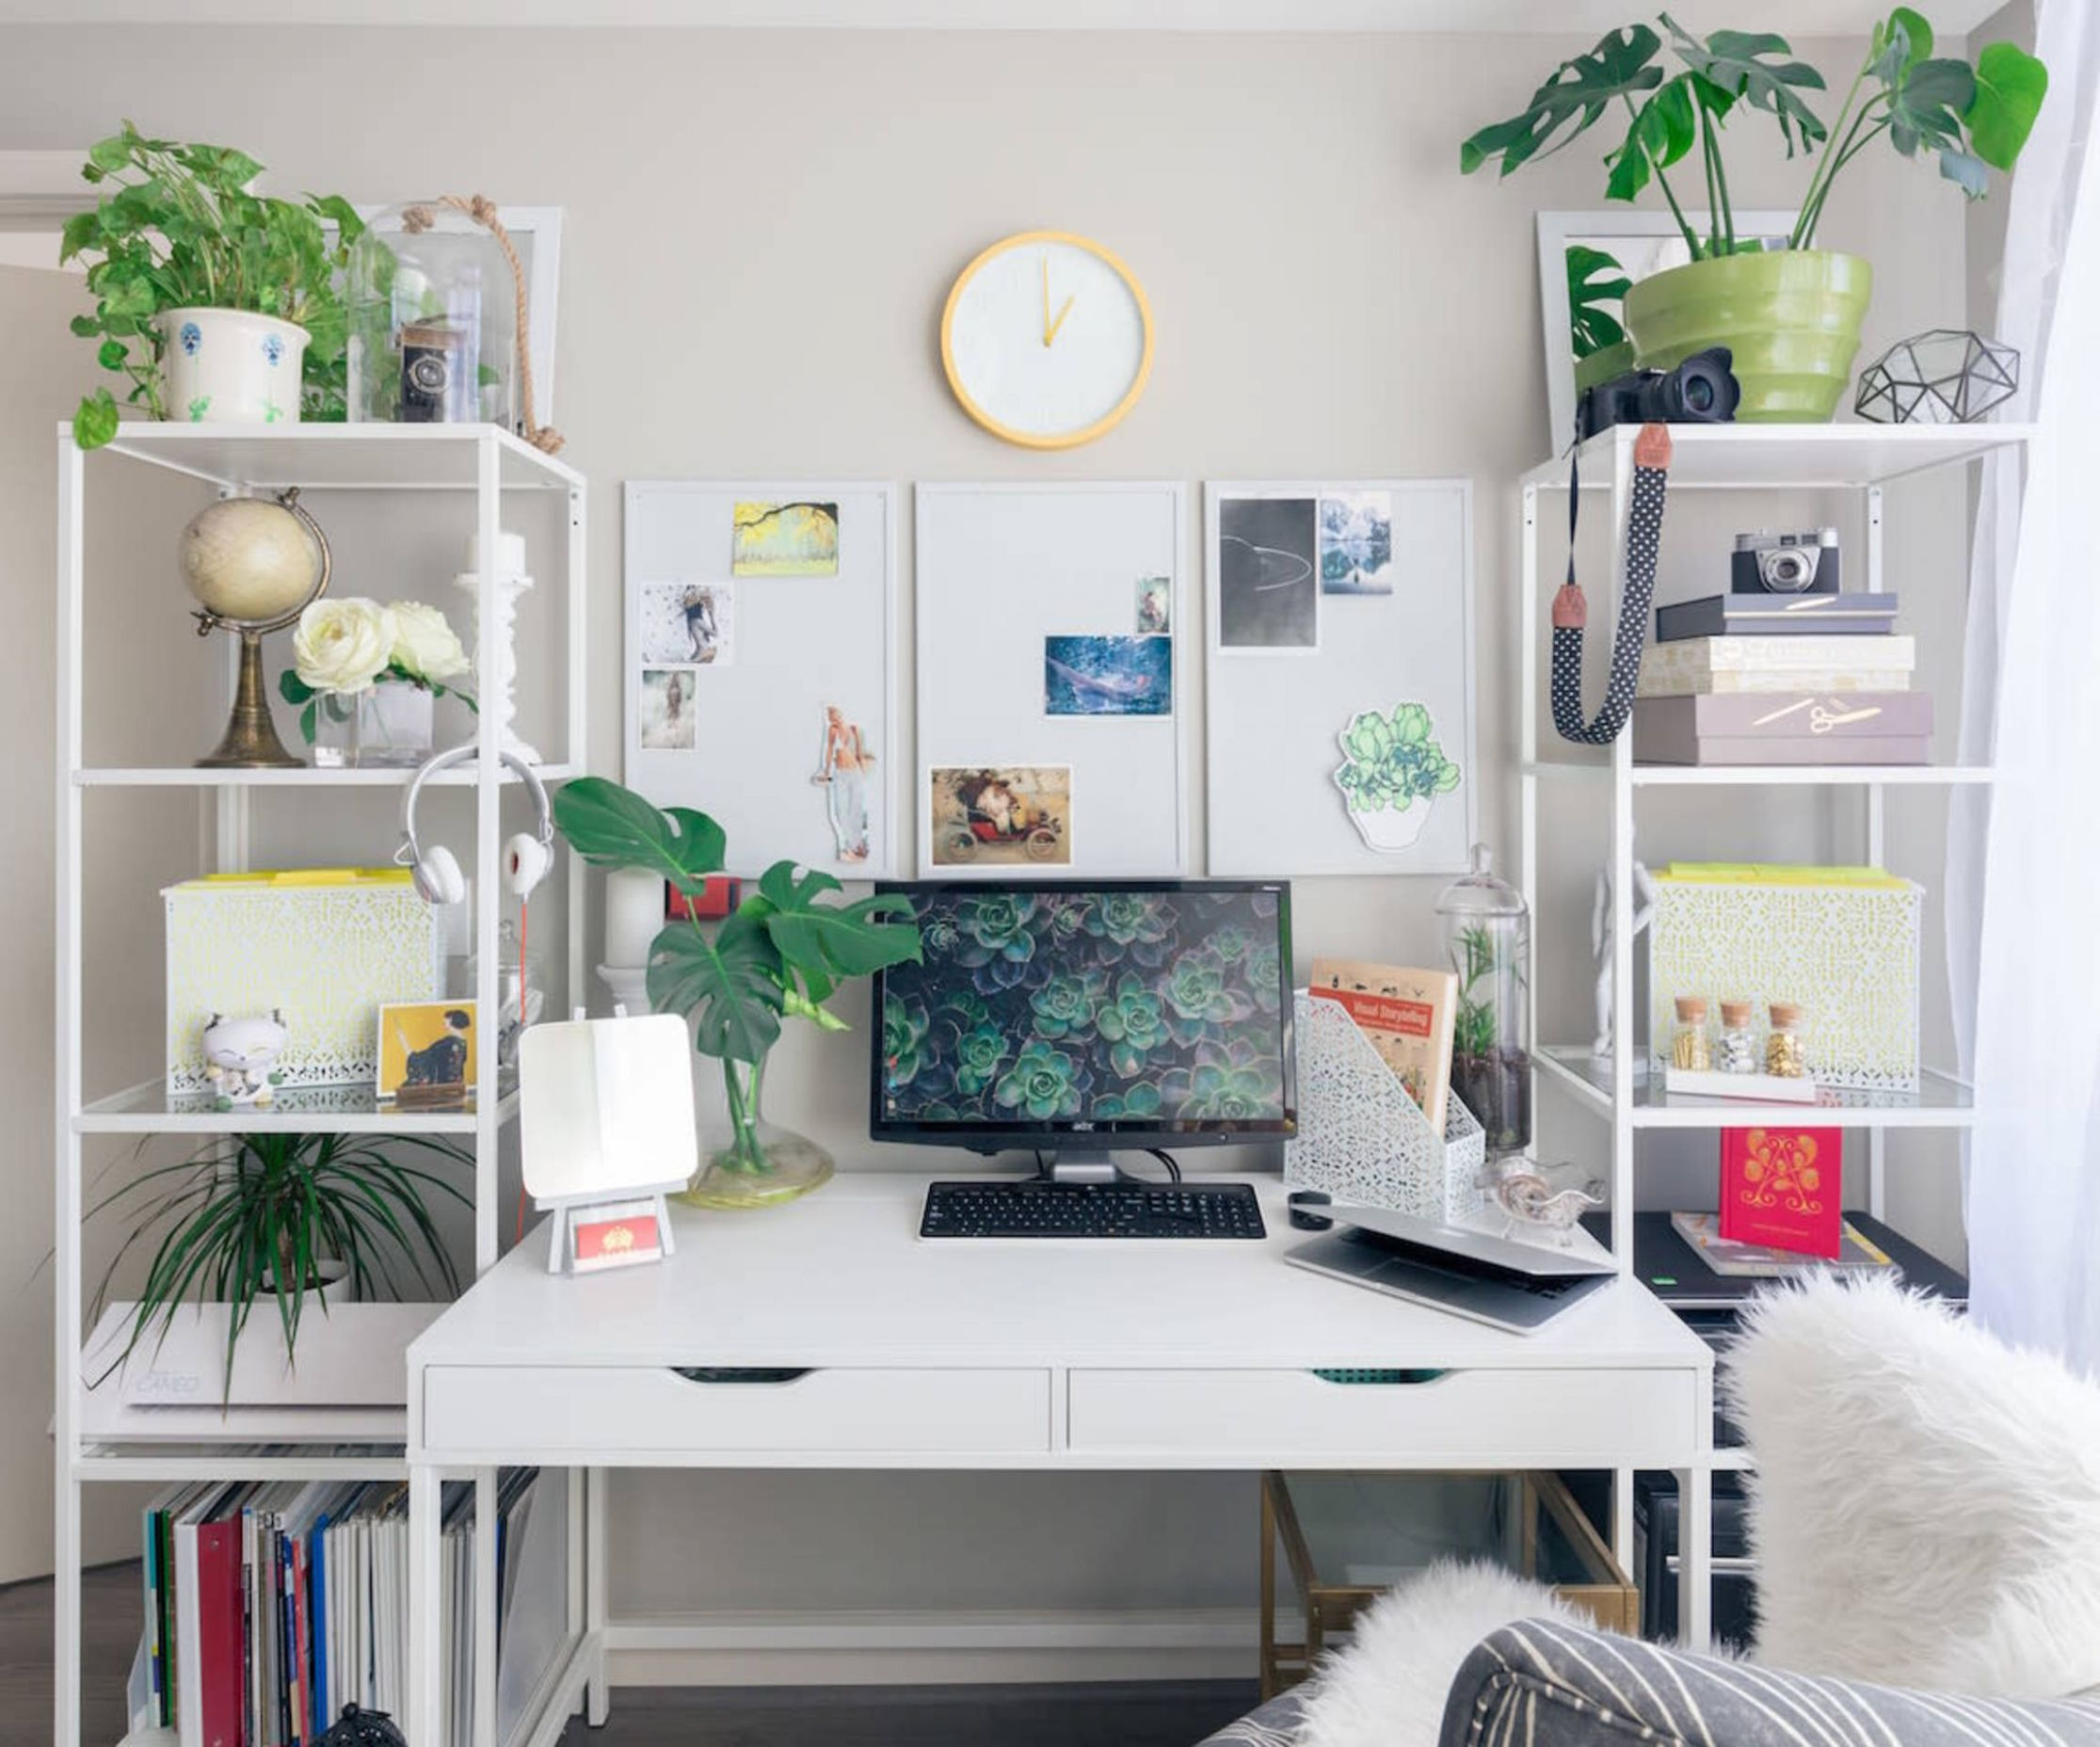 11 Home Office Ideas To Help You Work From Home Like A Boss